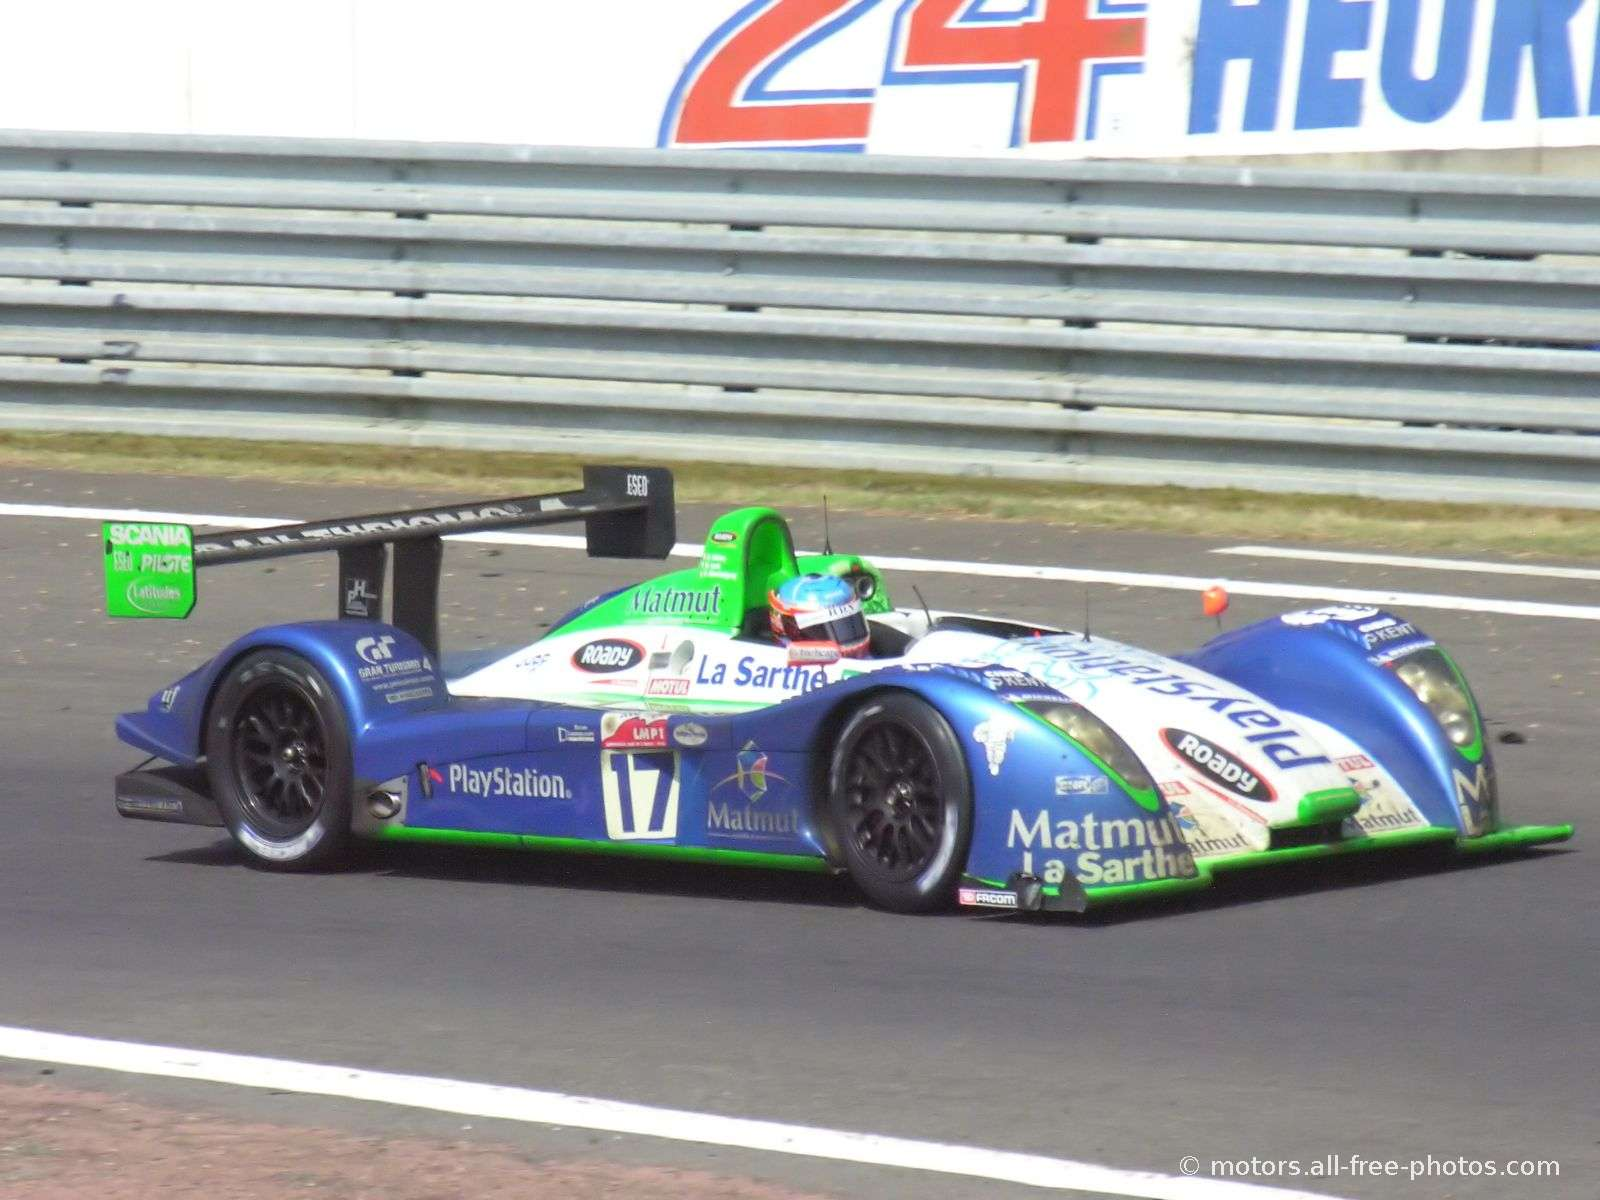 Pescarolo-Judd C60 - Second at the 24 h of Le Mans 2006